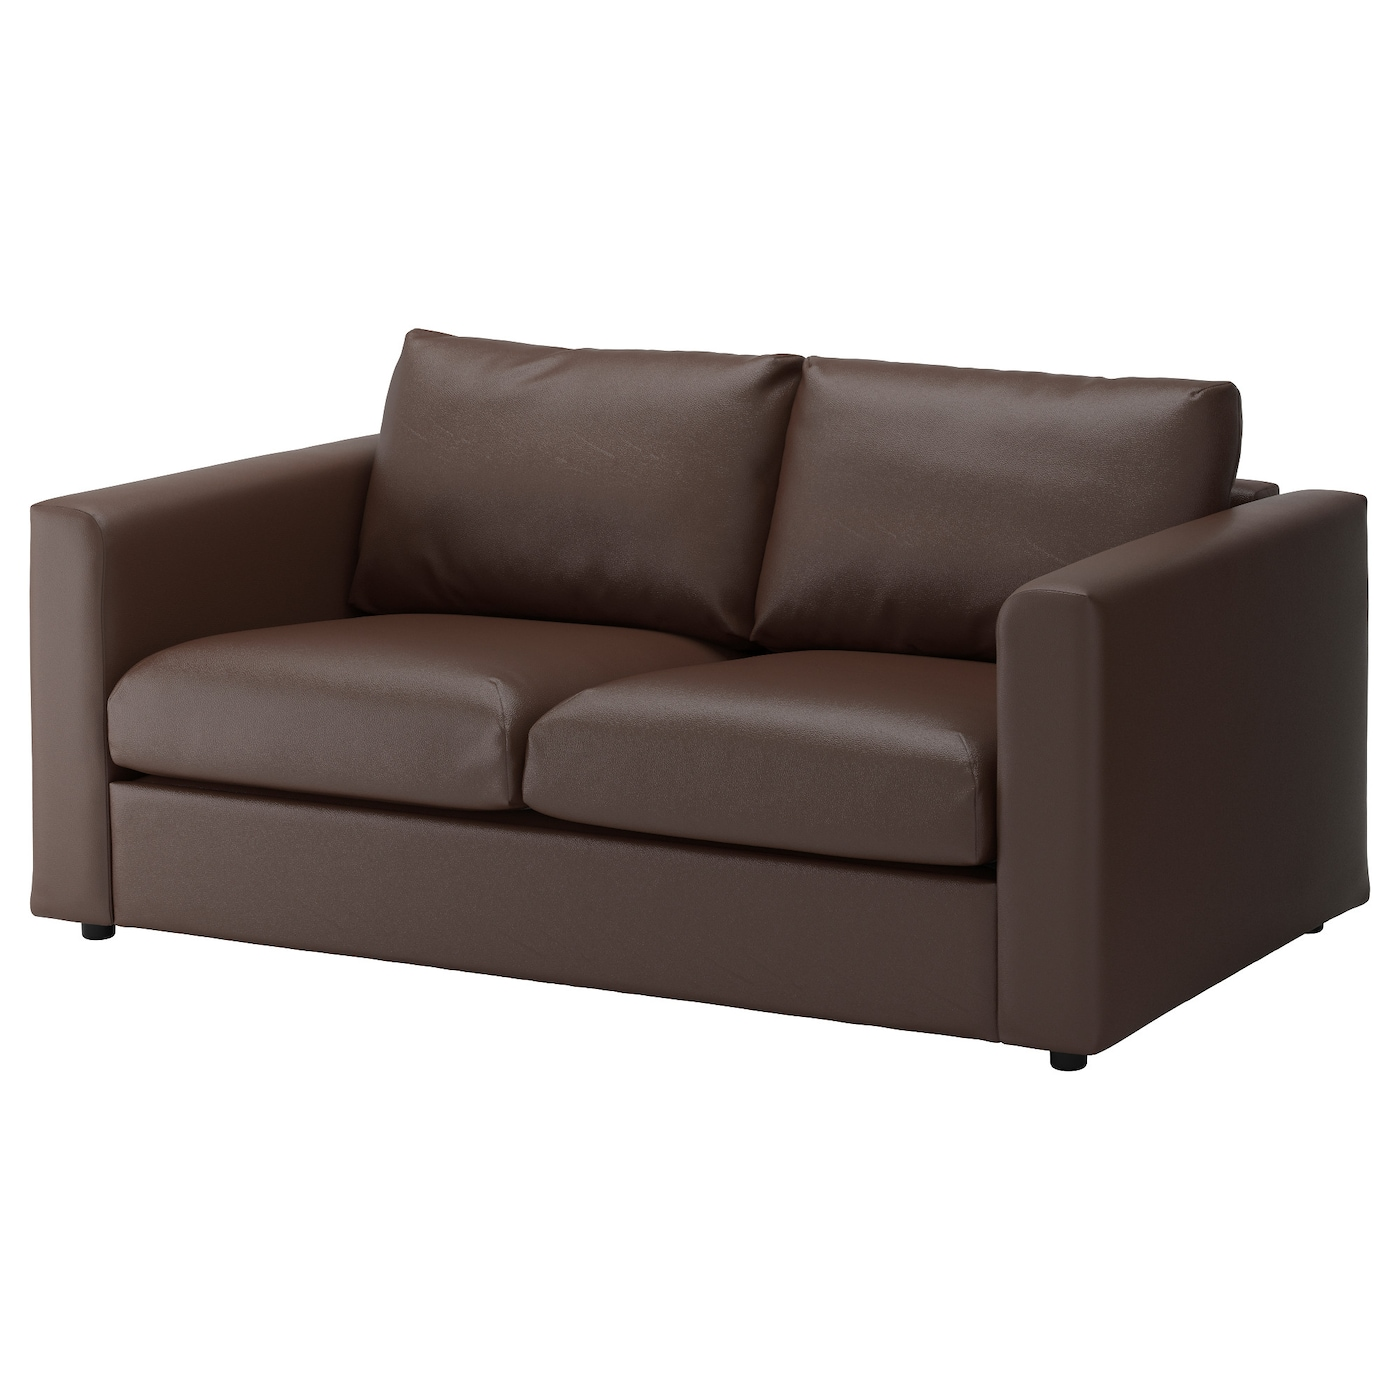 2 Sofa Modern Seater Sofas Quality From Boconcept TheSofa